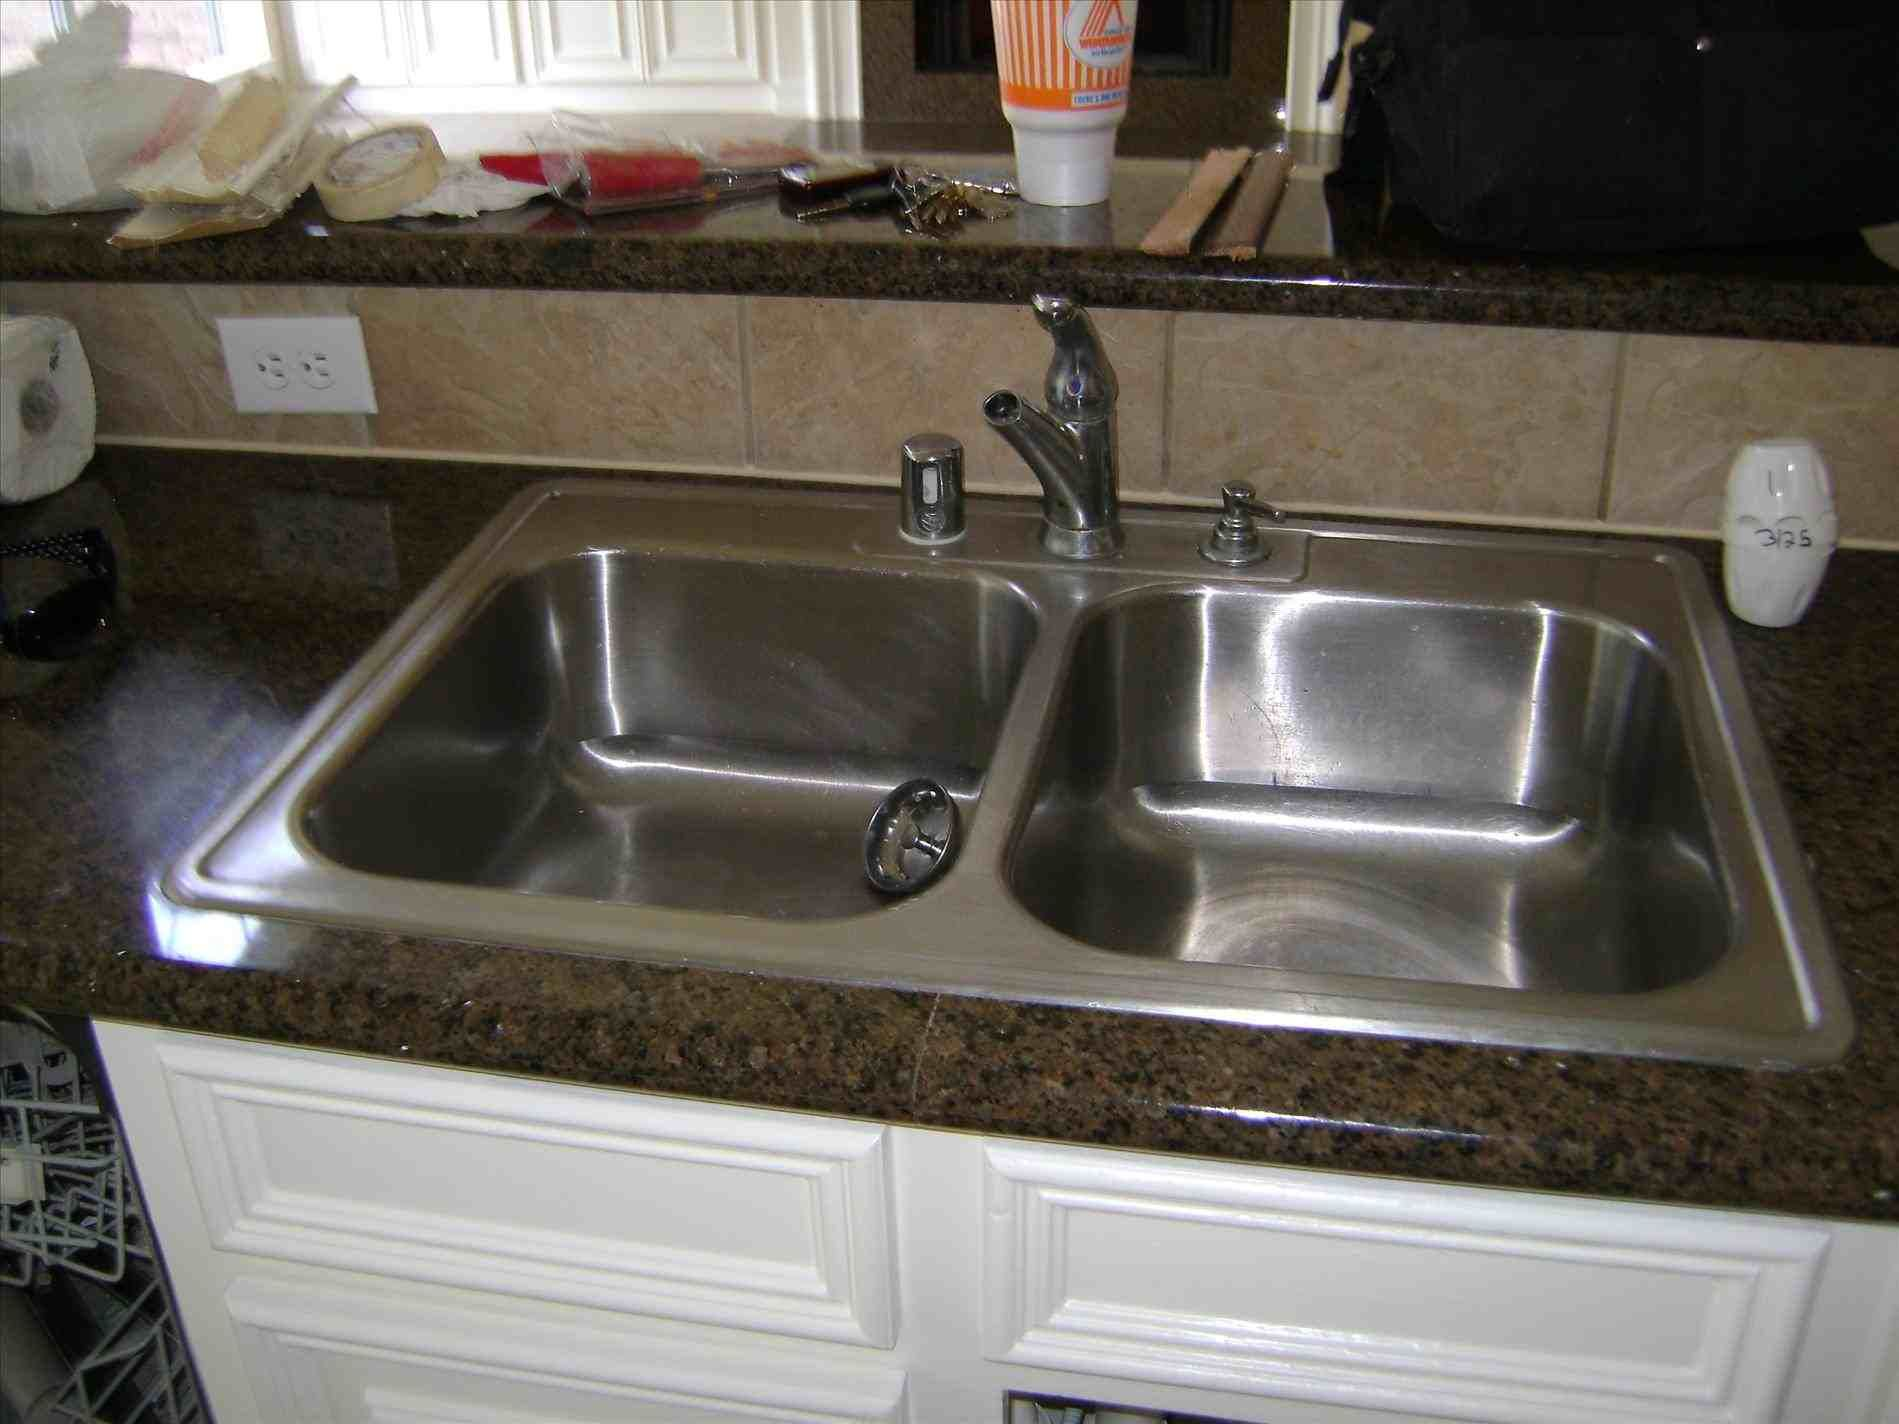 New Post kitchen sink replacement parts visit bathroomremodelideass ...